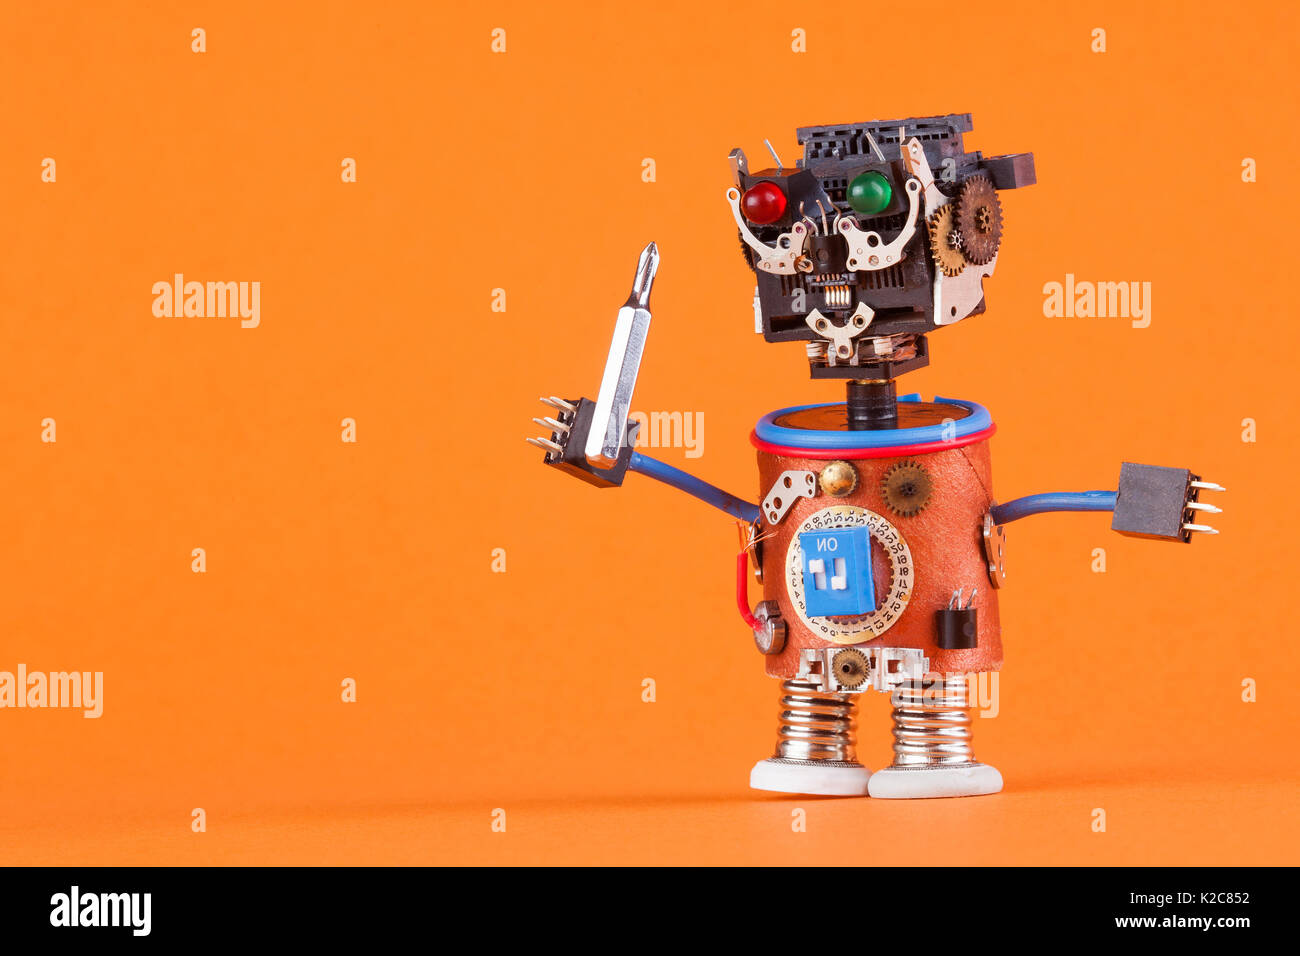 Funny robot toy with screw driver. Cute character black plastic head, colored green red eyes lamp, blue wire hands. Stock Photo